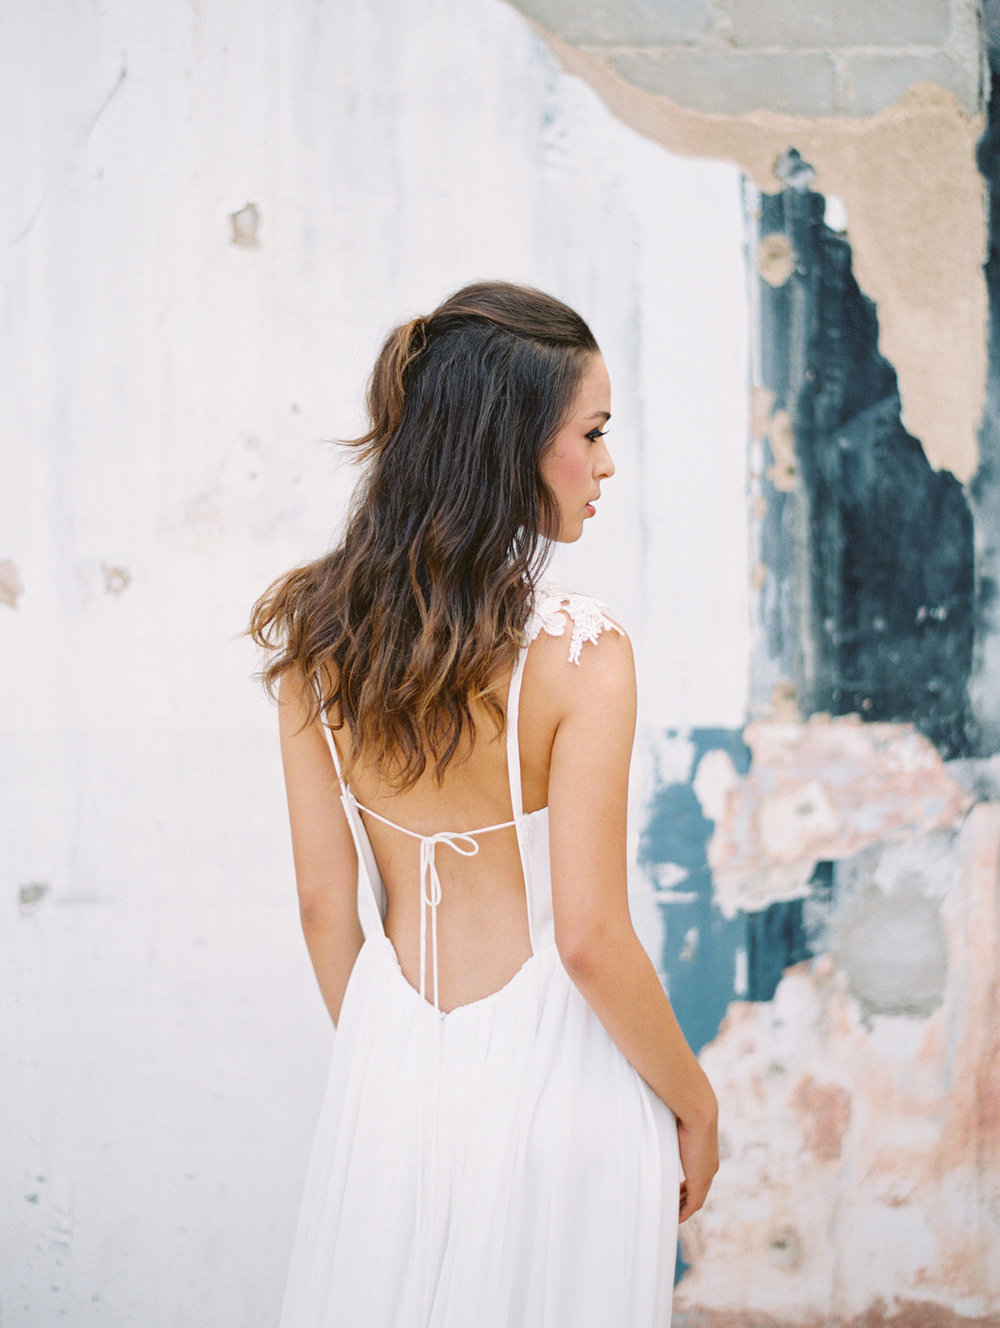 Bride in a low back dress against a textured wall